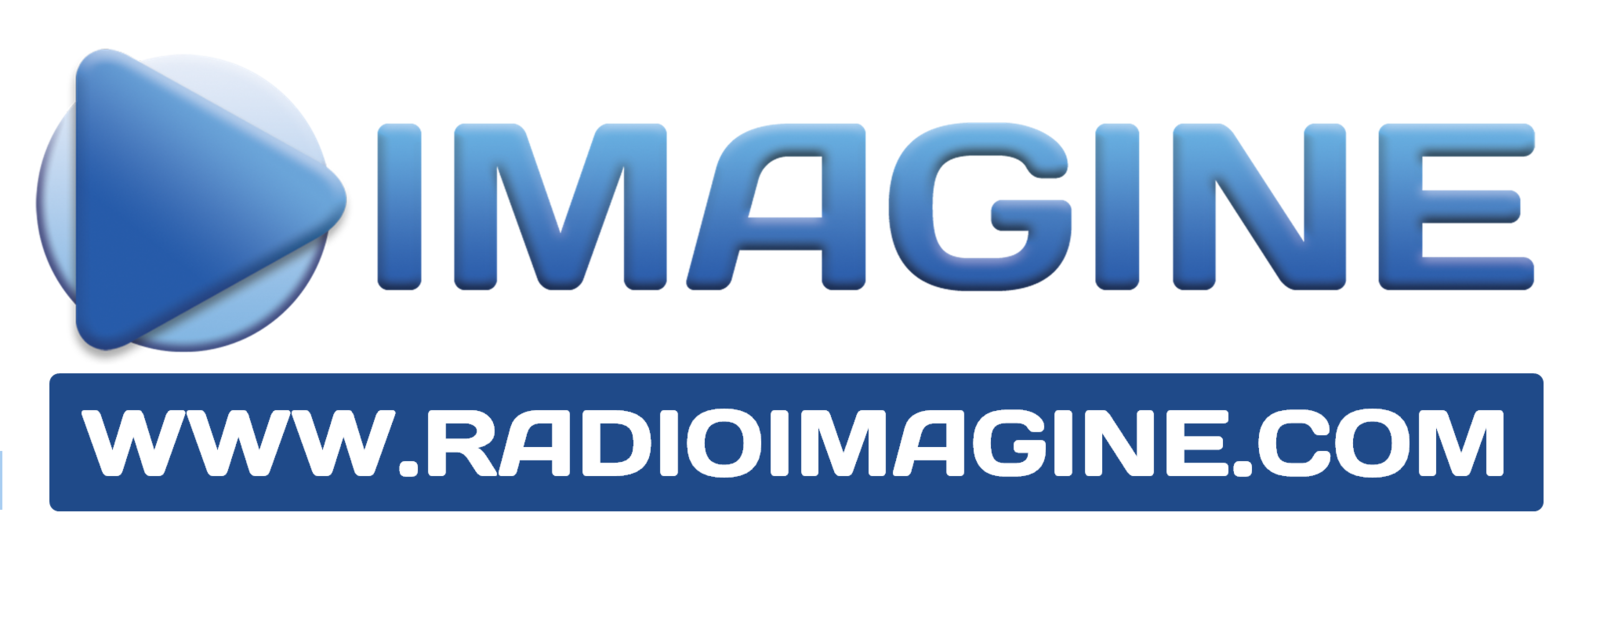 Radio Imagine - Sports Hautes-Alpes : Treizieme Numero